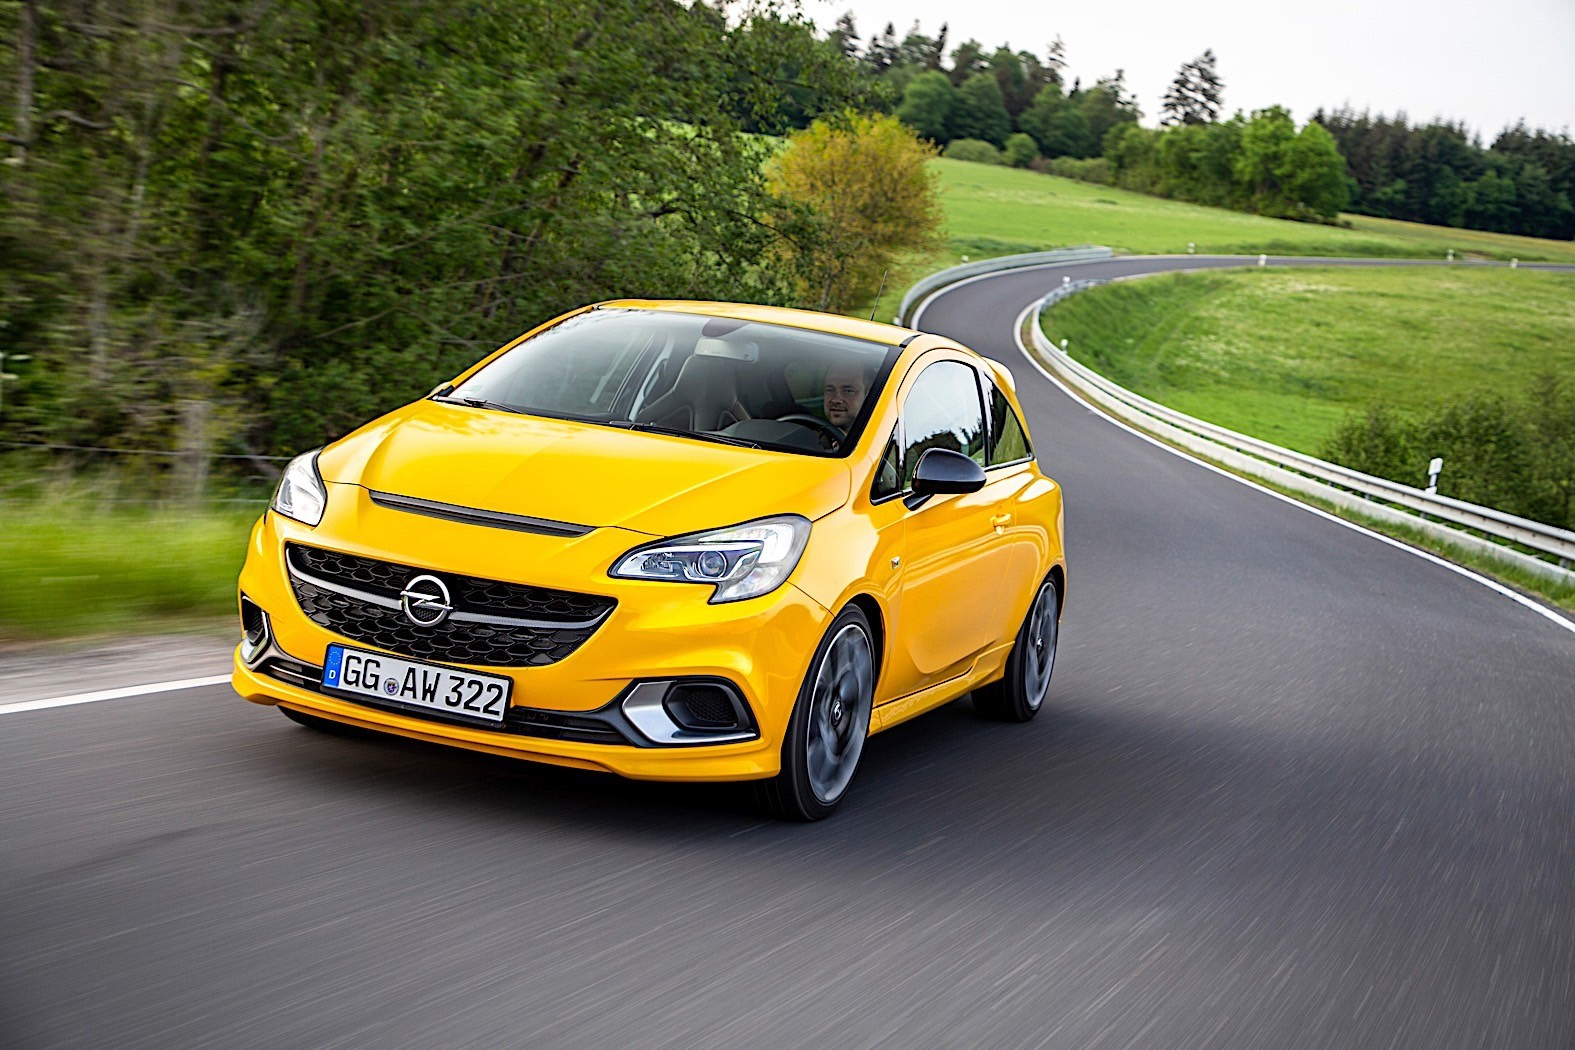 electric opel corsa order books to open in 2019 autoevolution. Black Bedroom Furniture Sets. Home Design Ideas